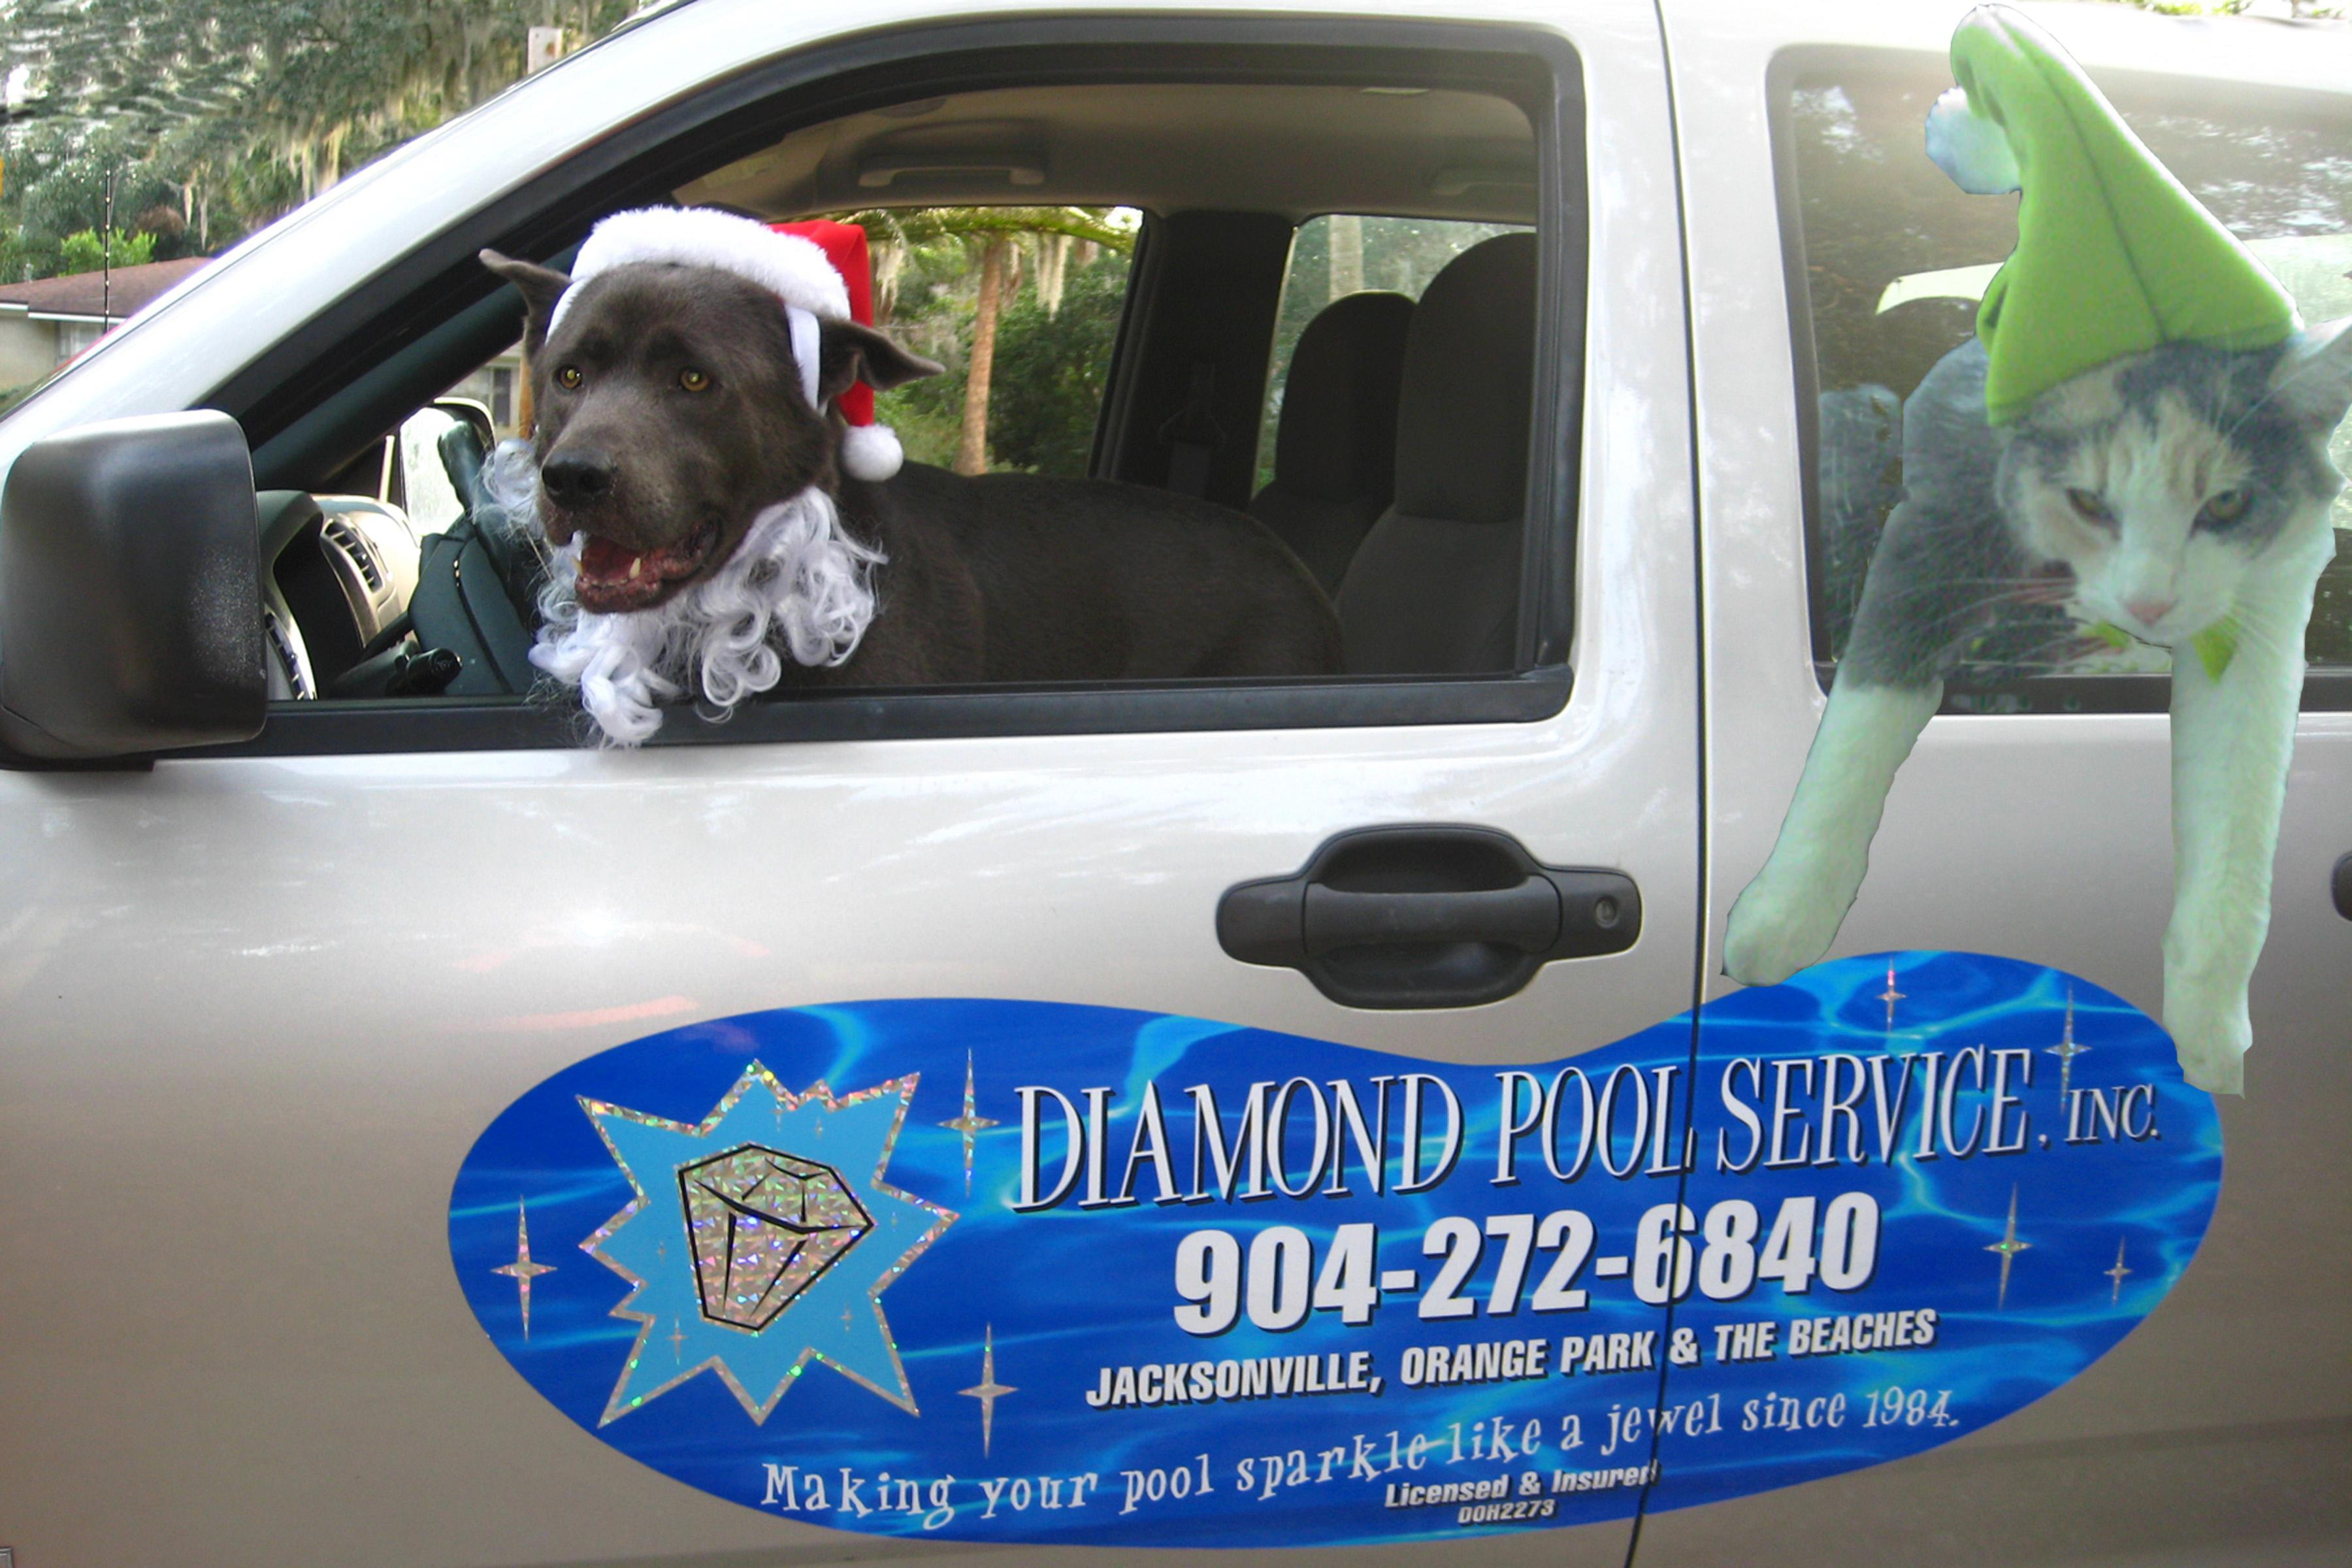 Diamond Pool Service, Inc.